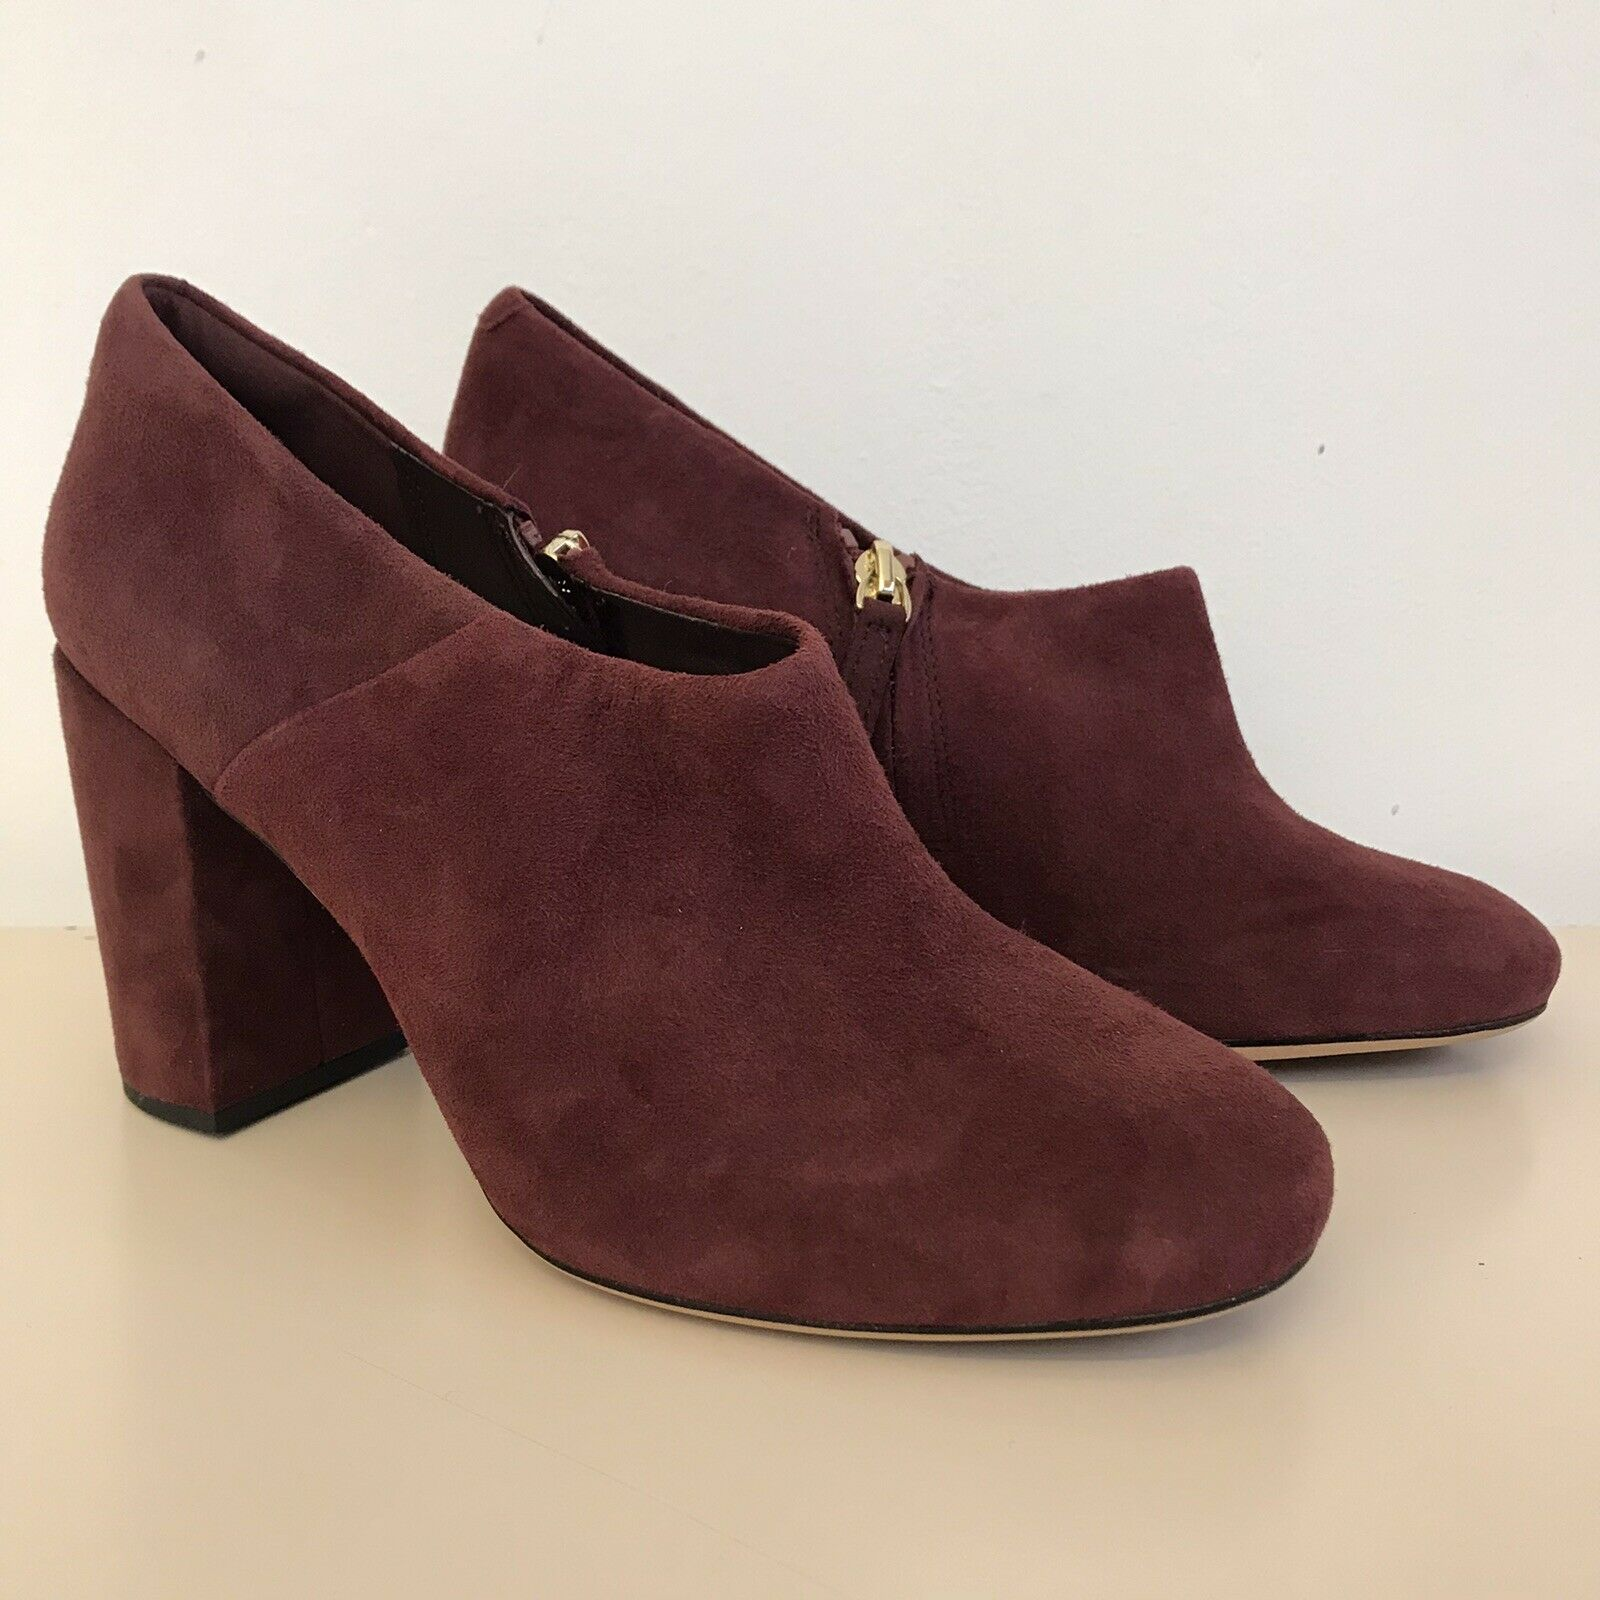 NEW! CLARKS 'Amabel Clara' Burgundy Suede Leather Block Heel Shoes Boots 5.5 D